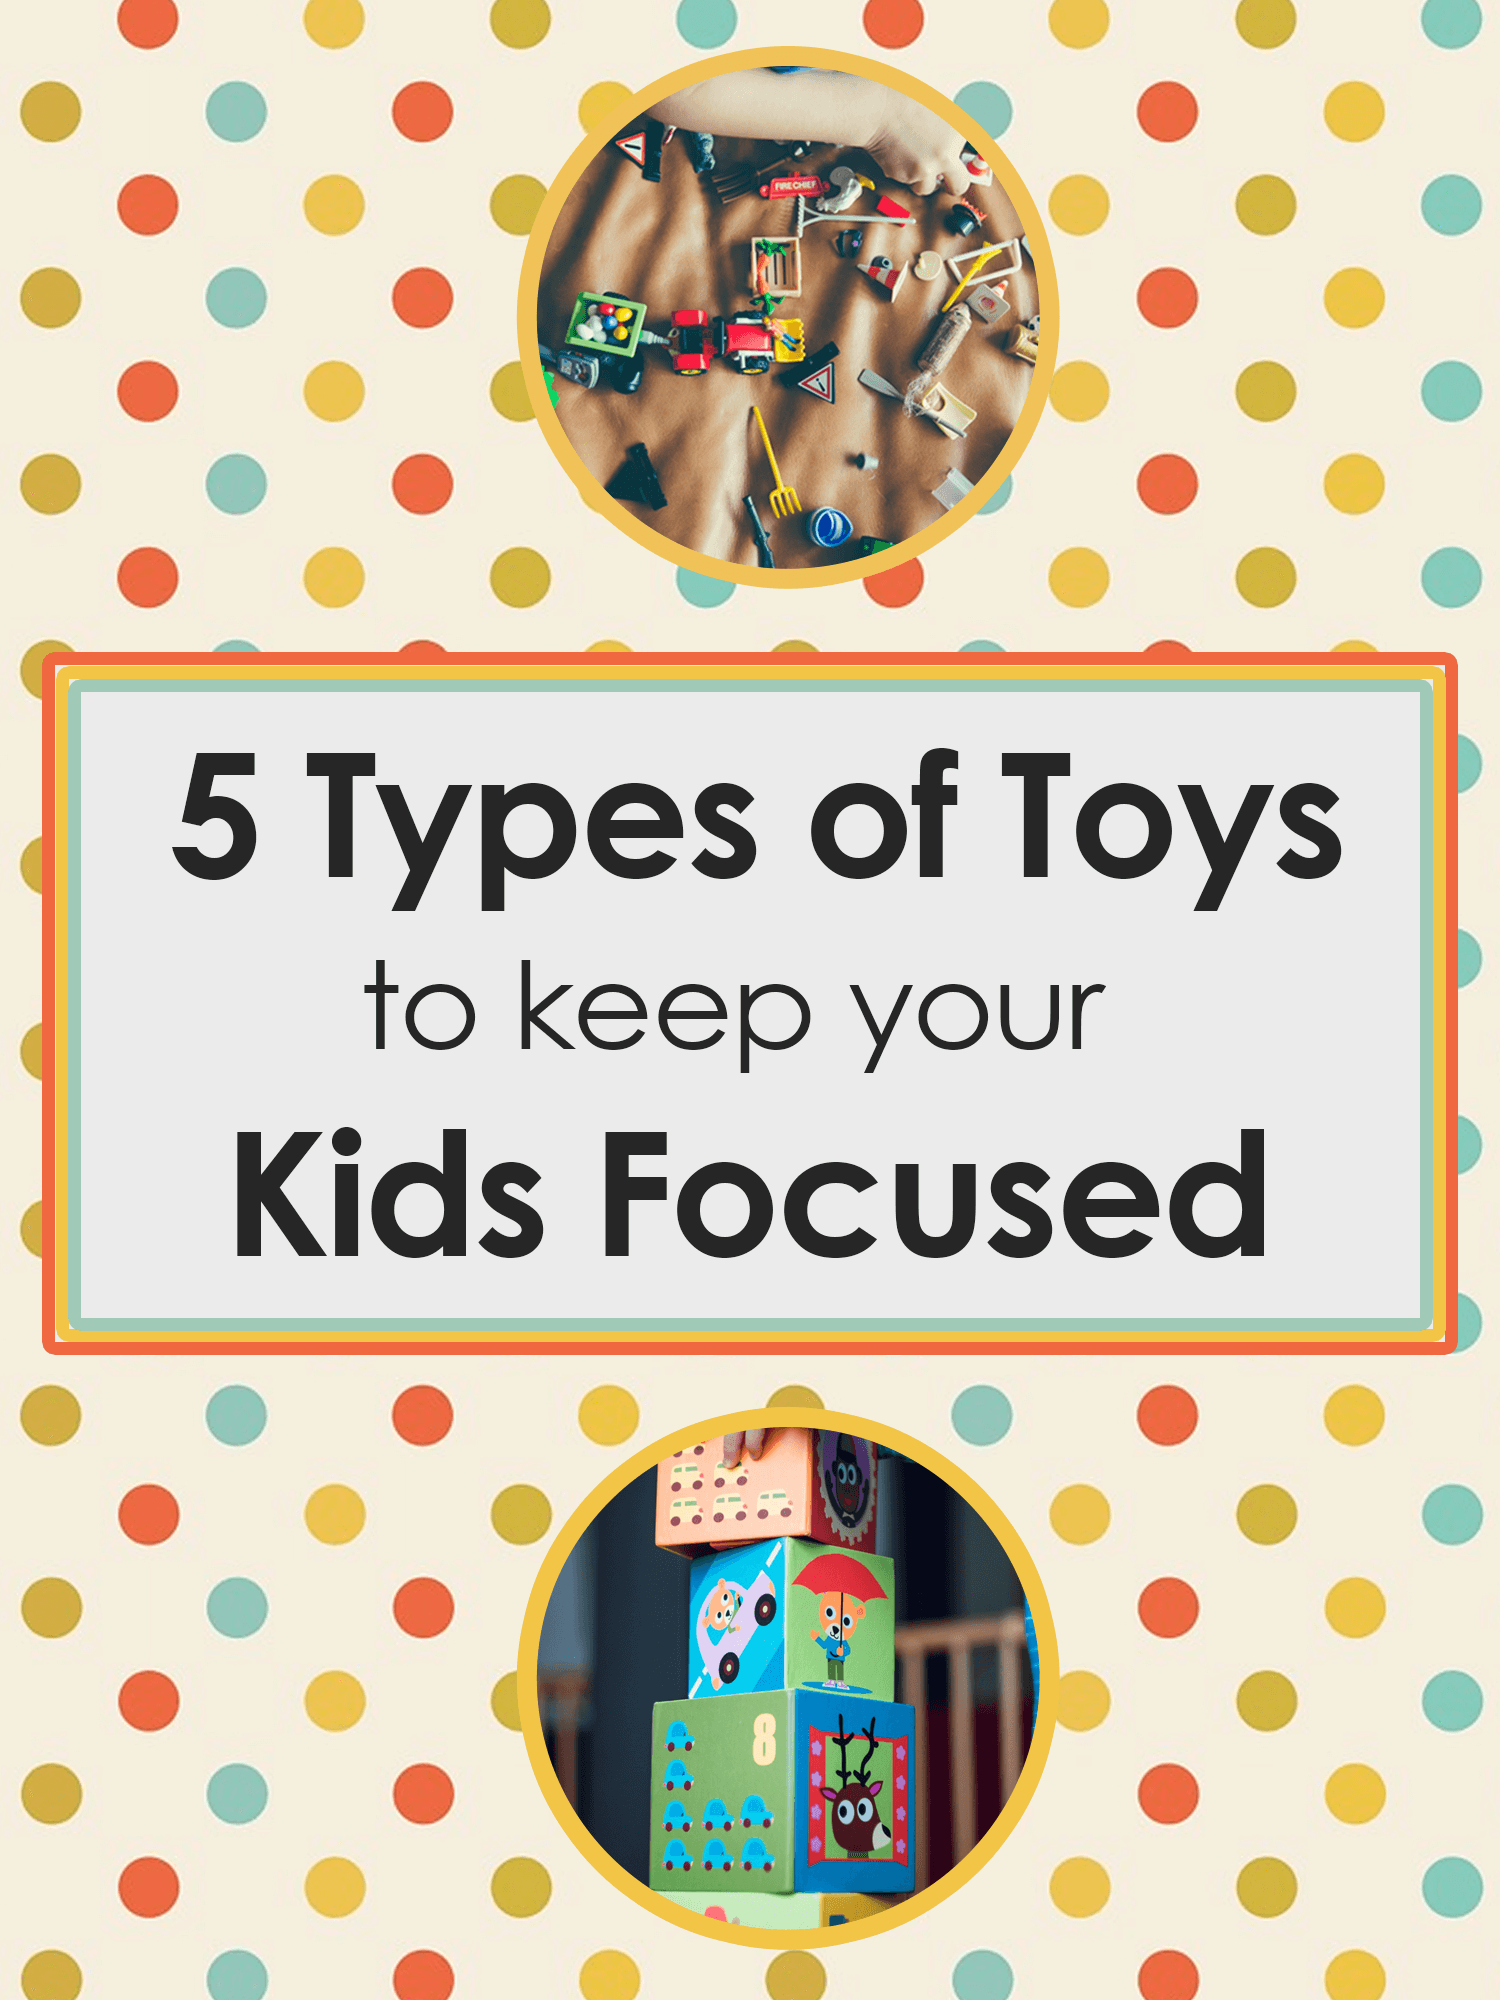 5 Types of Toys to keep your Kid Focused _ imagine forest